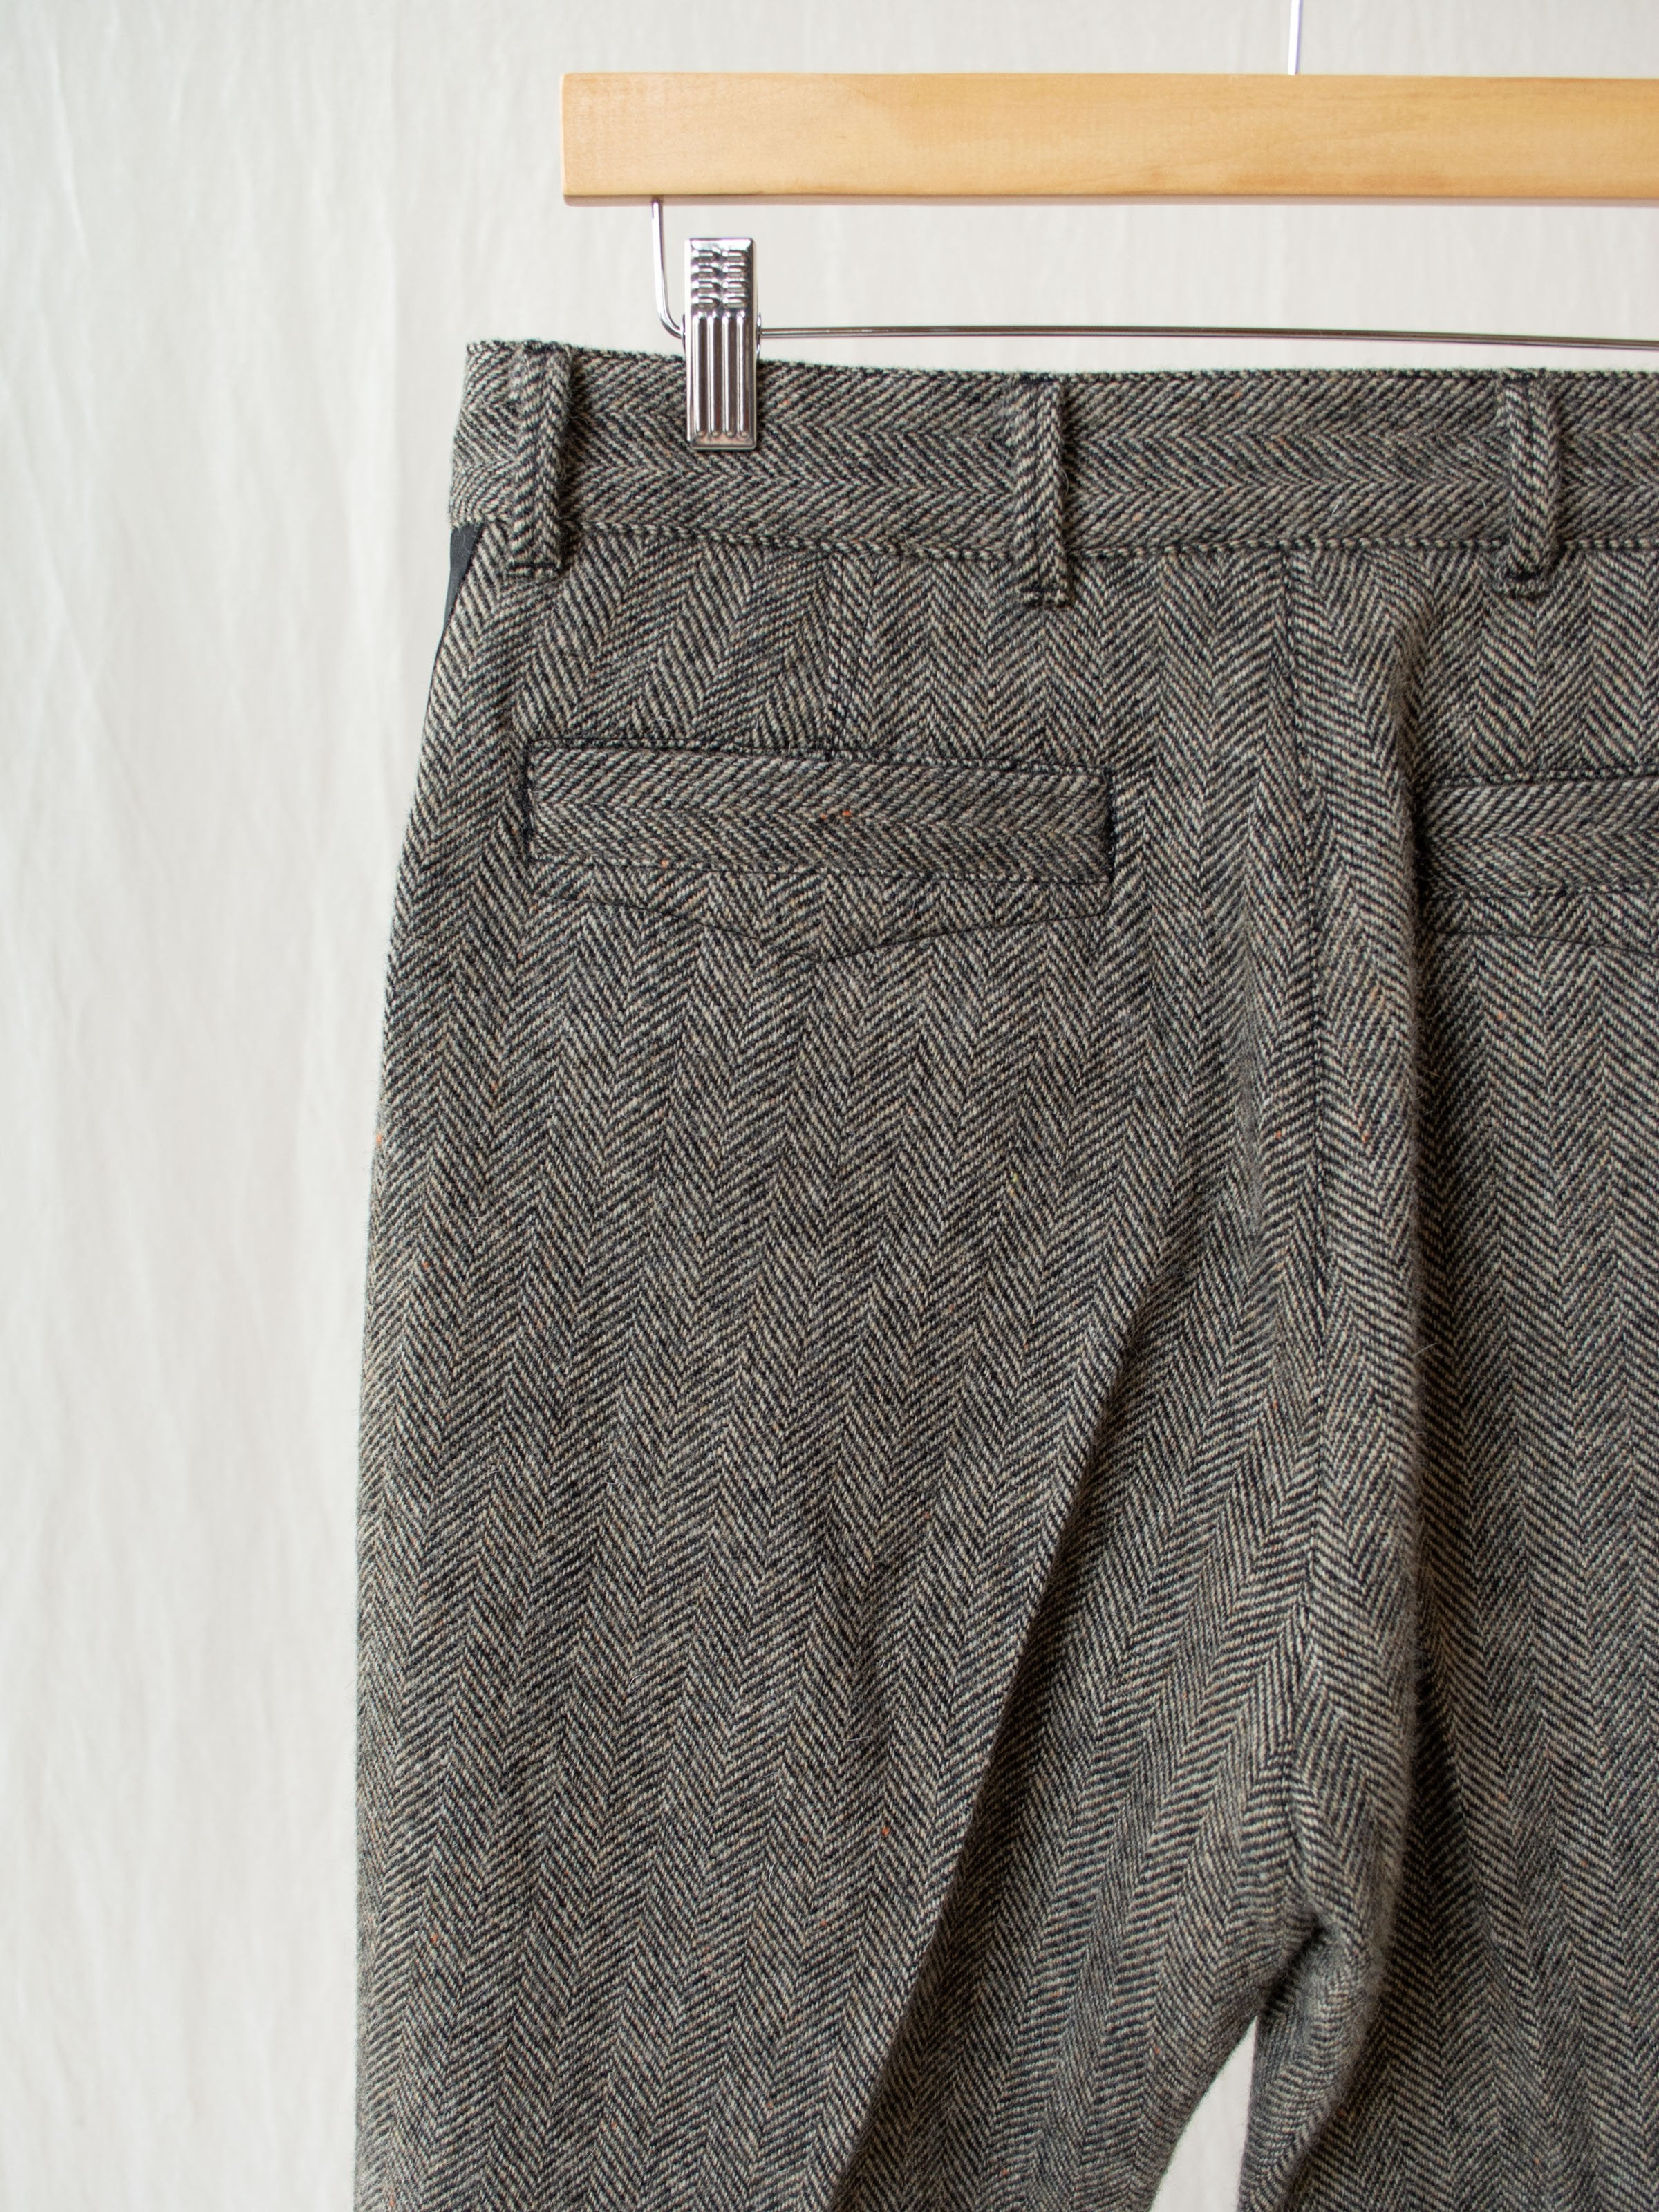 Officer Pants - Black & Beige Herringbone